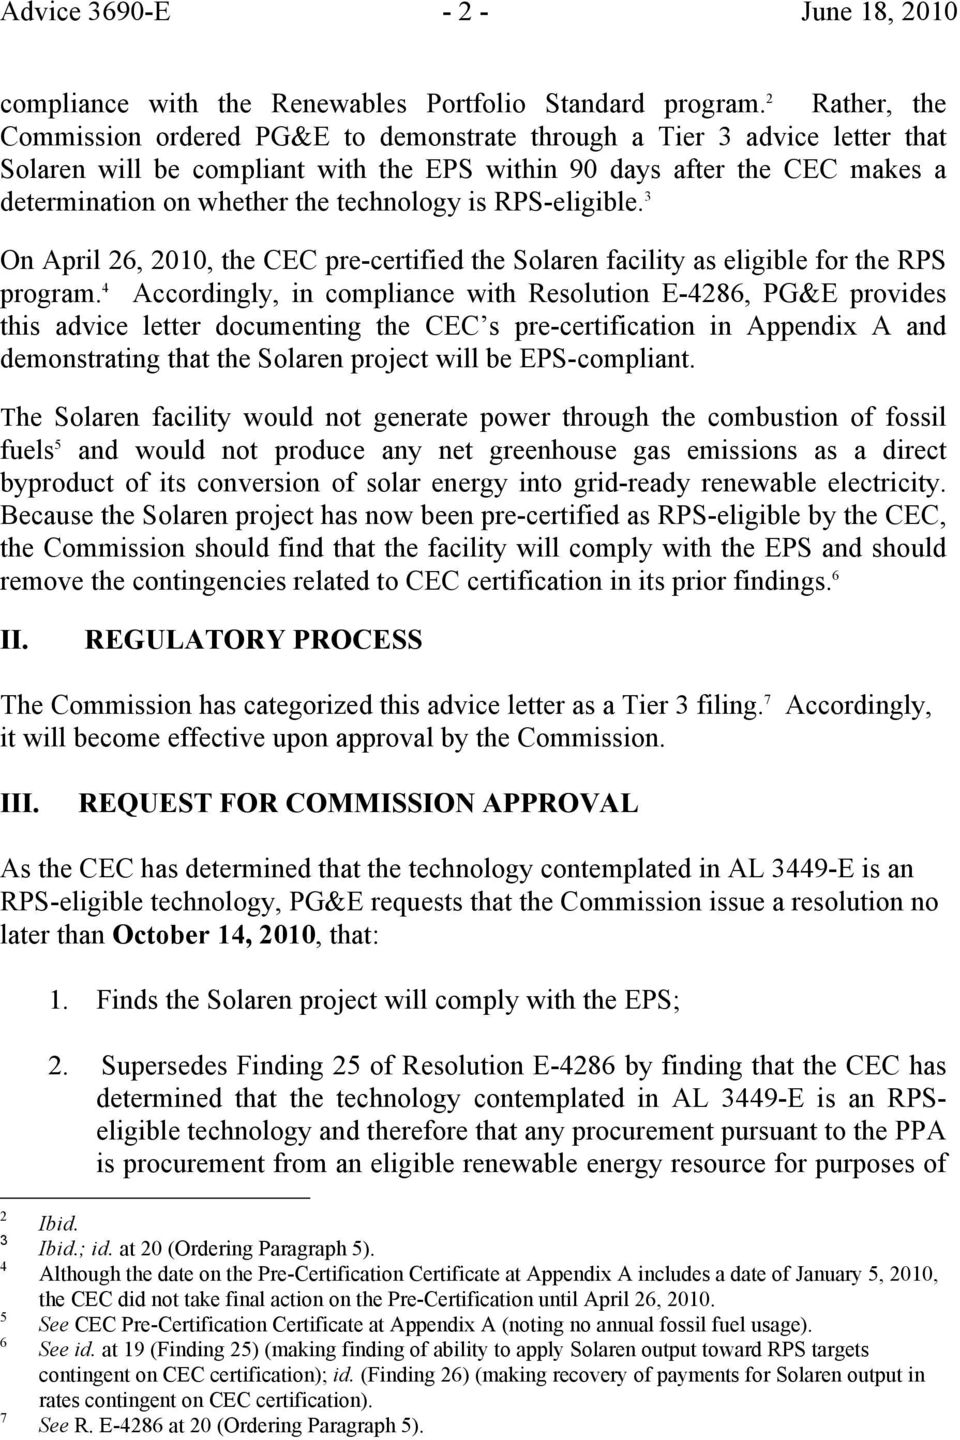 technology is RPS-eligible. 3 On April 26, 2010, the CEC pre-certified the Solaren facility as eligible for the RPS program.